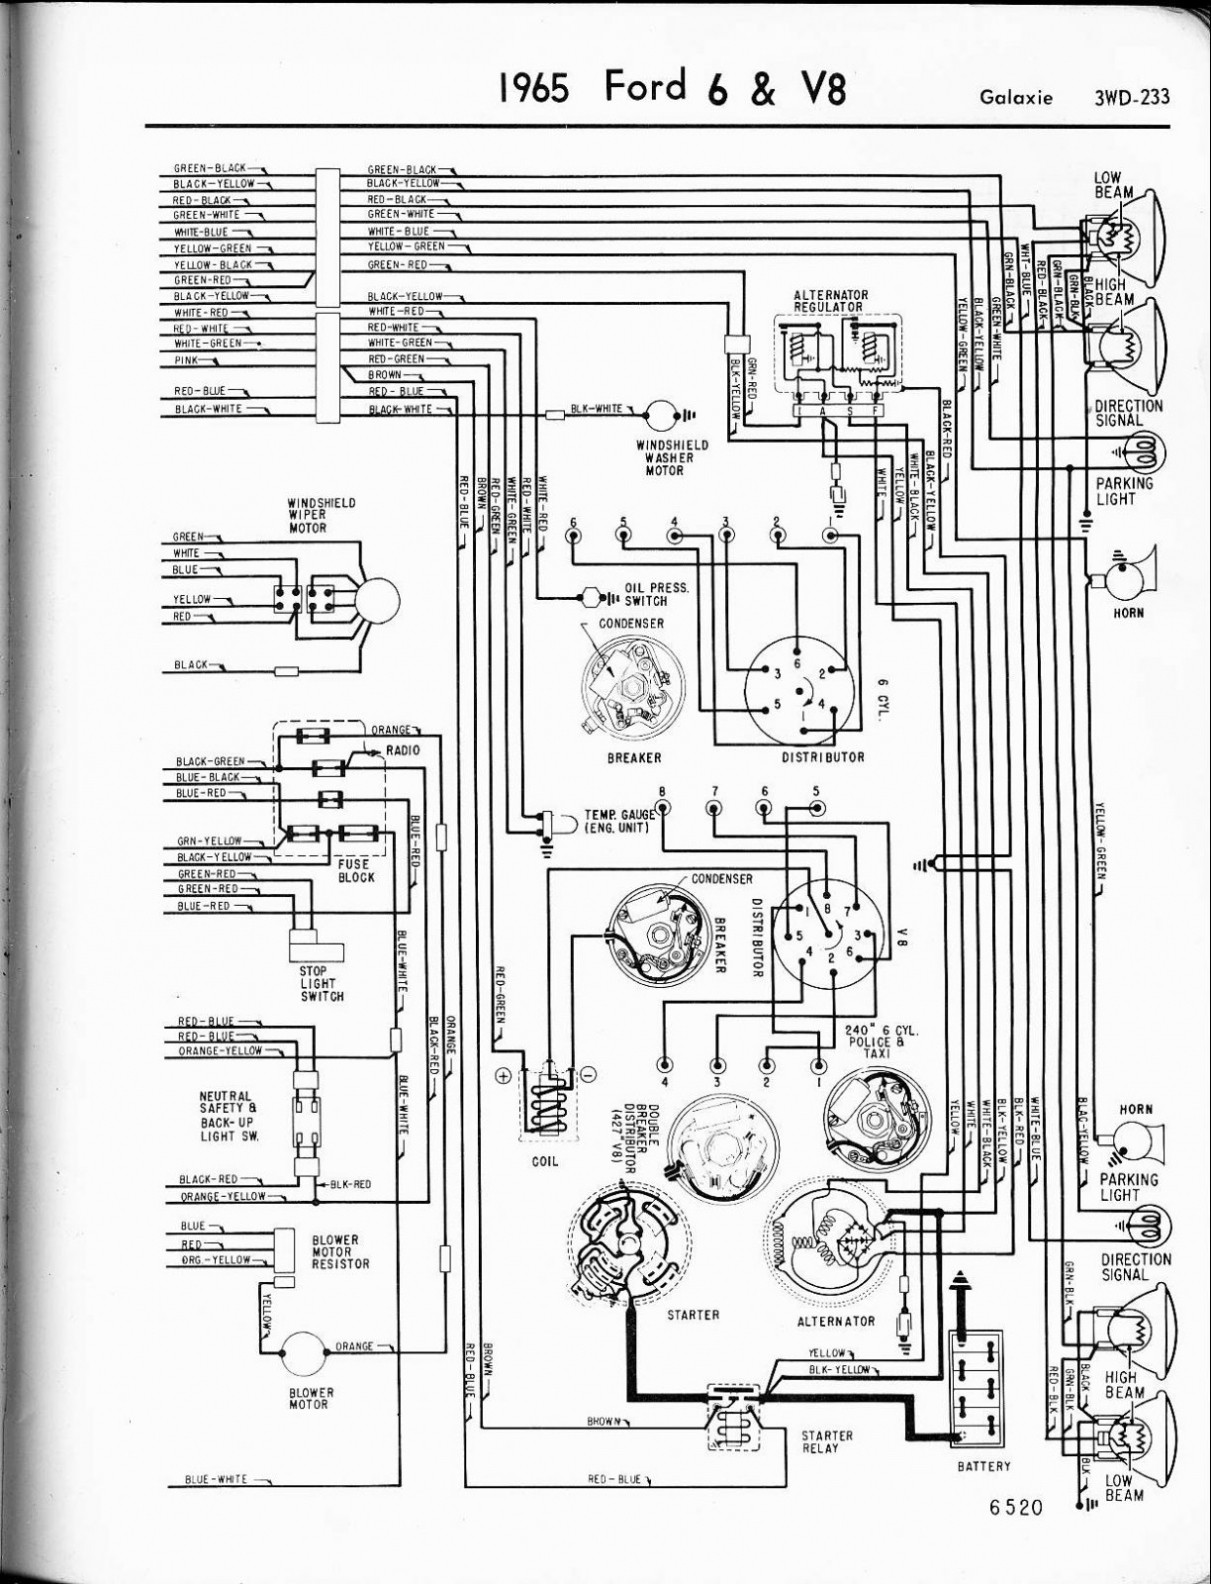 Kf 6777 Box Diagram Together With Ford Focus Fuse Box Diagram Along With 2002 Wiring Diagram